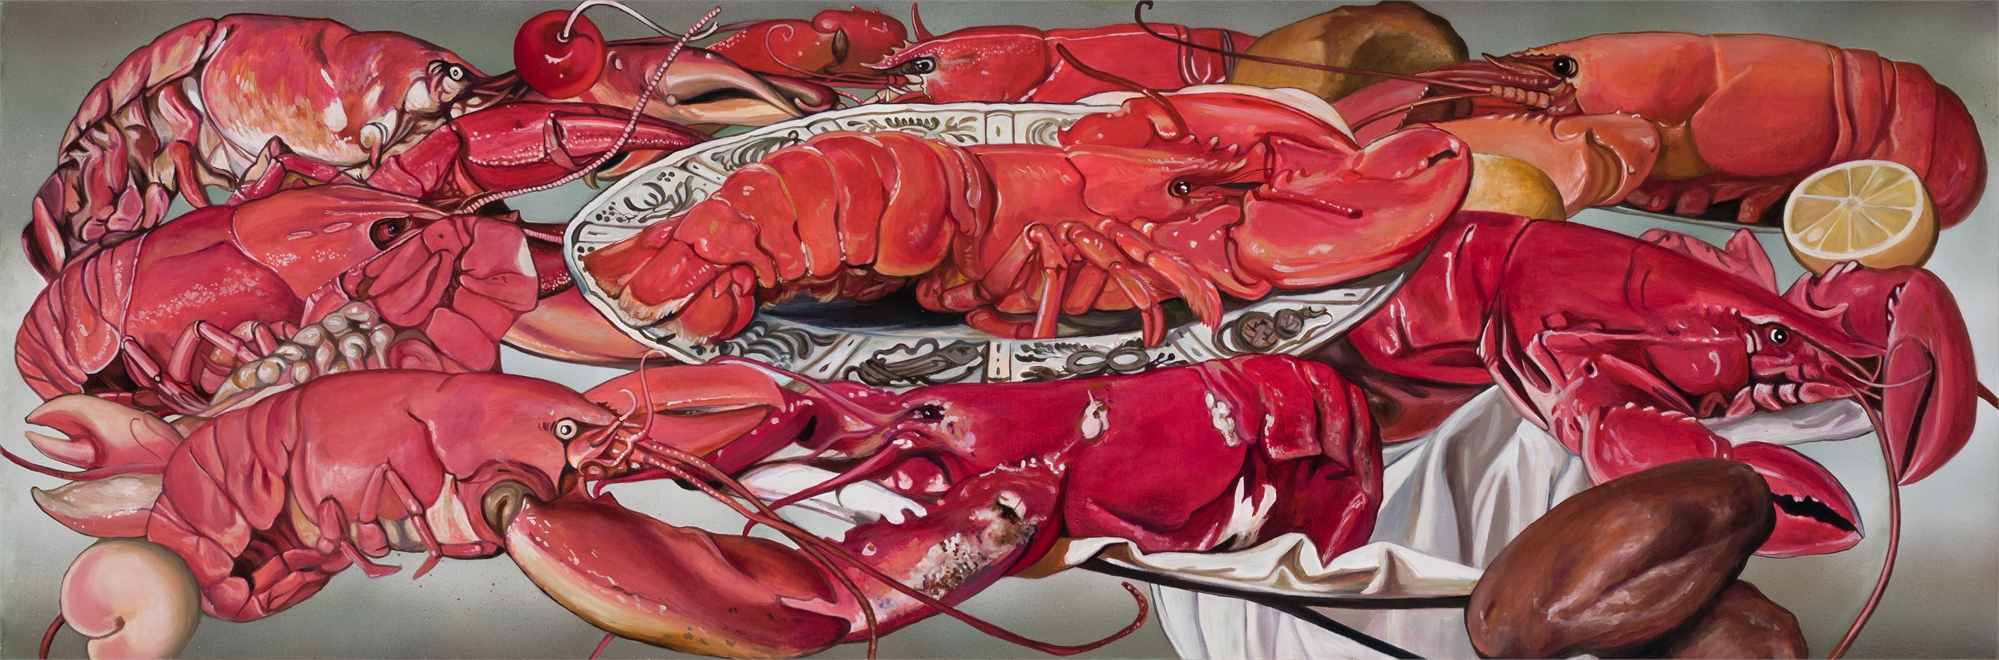 My Lobsters by Melissa Furness